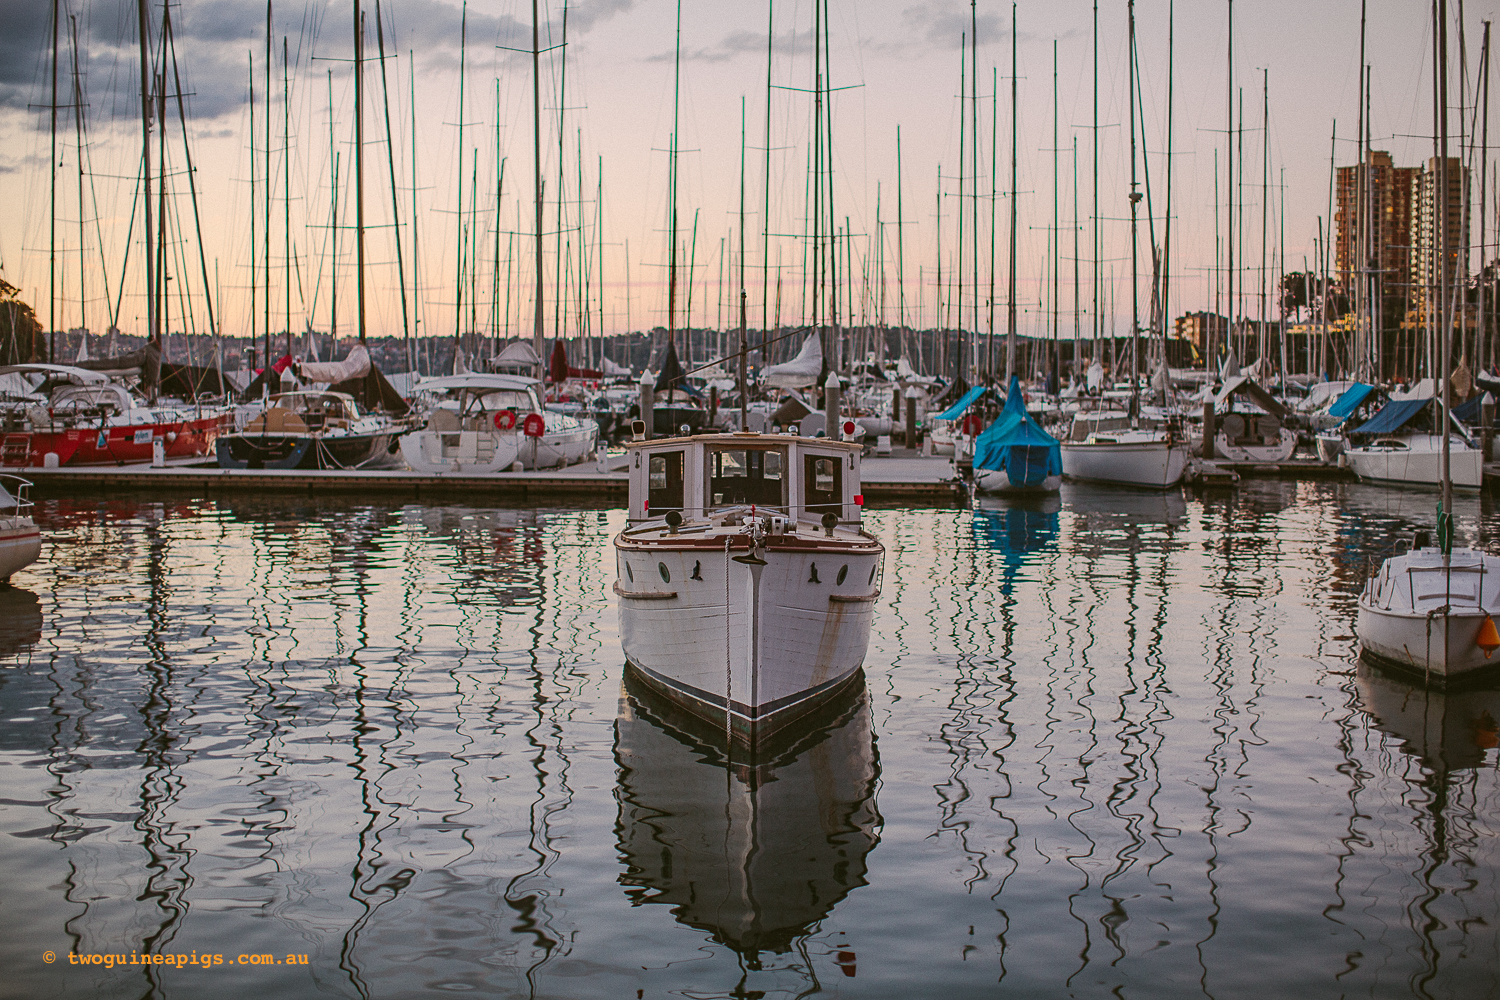 twoguineapigs_rushcutters_bay_winter_sunset_landscapes_1500-24.jpg